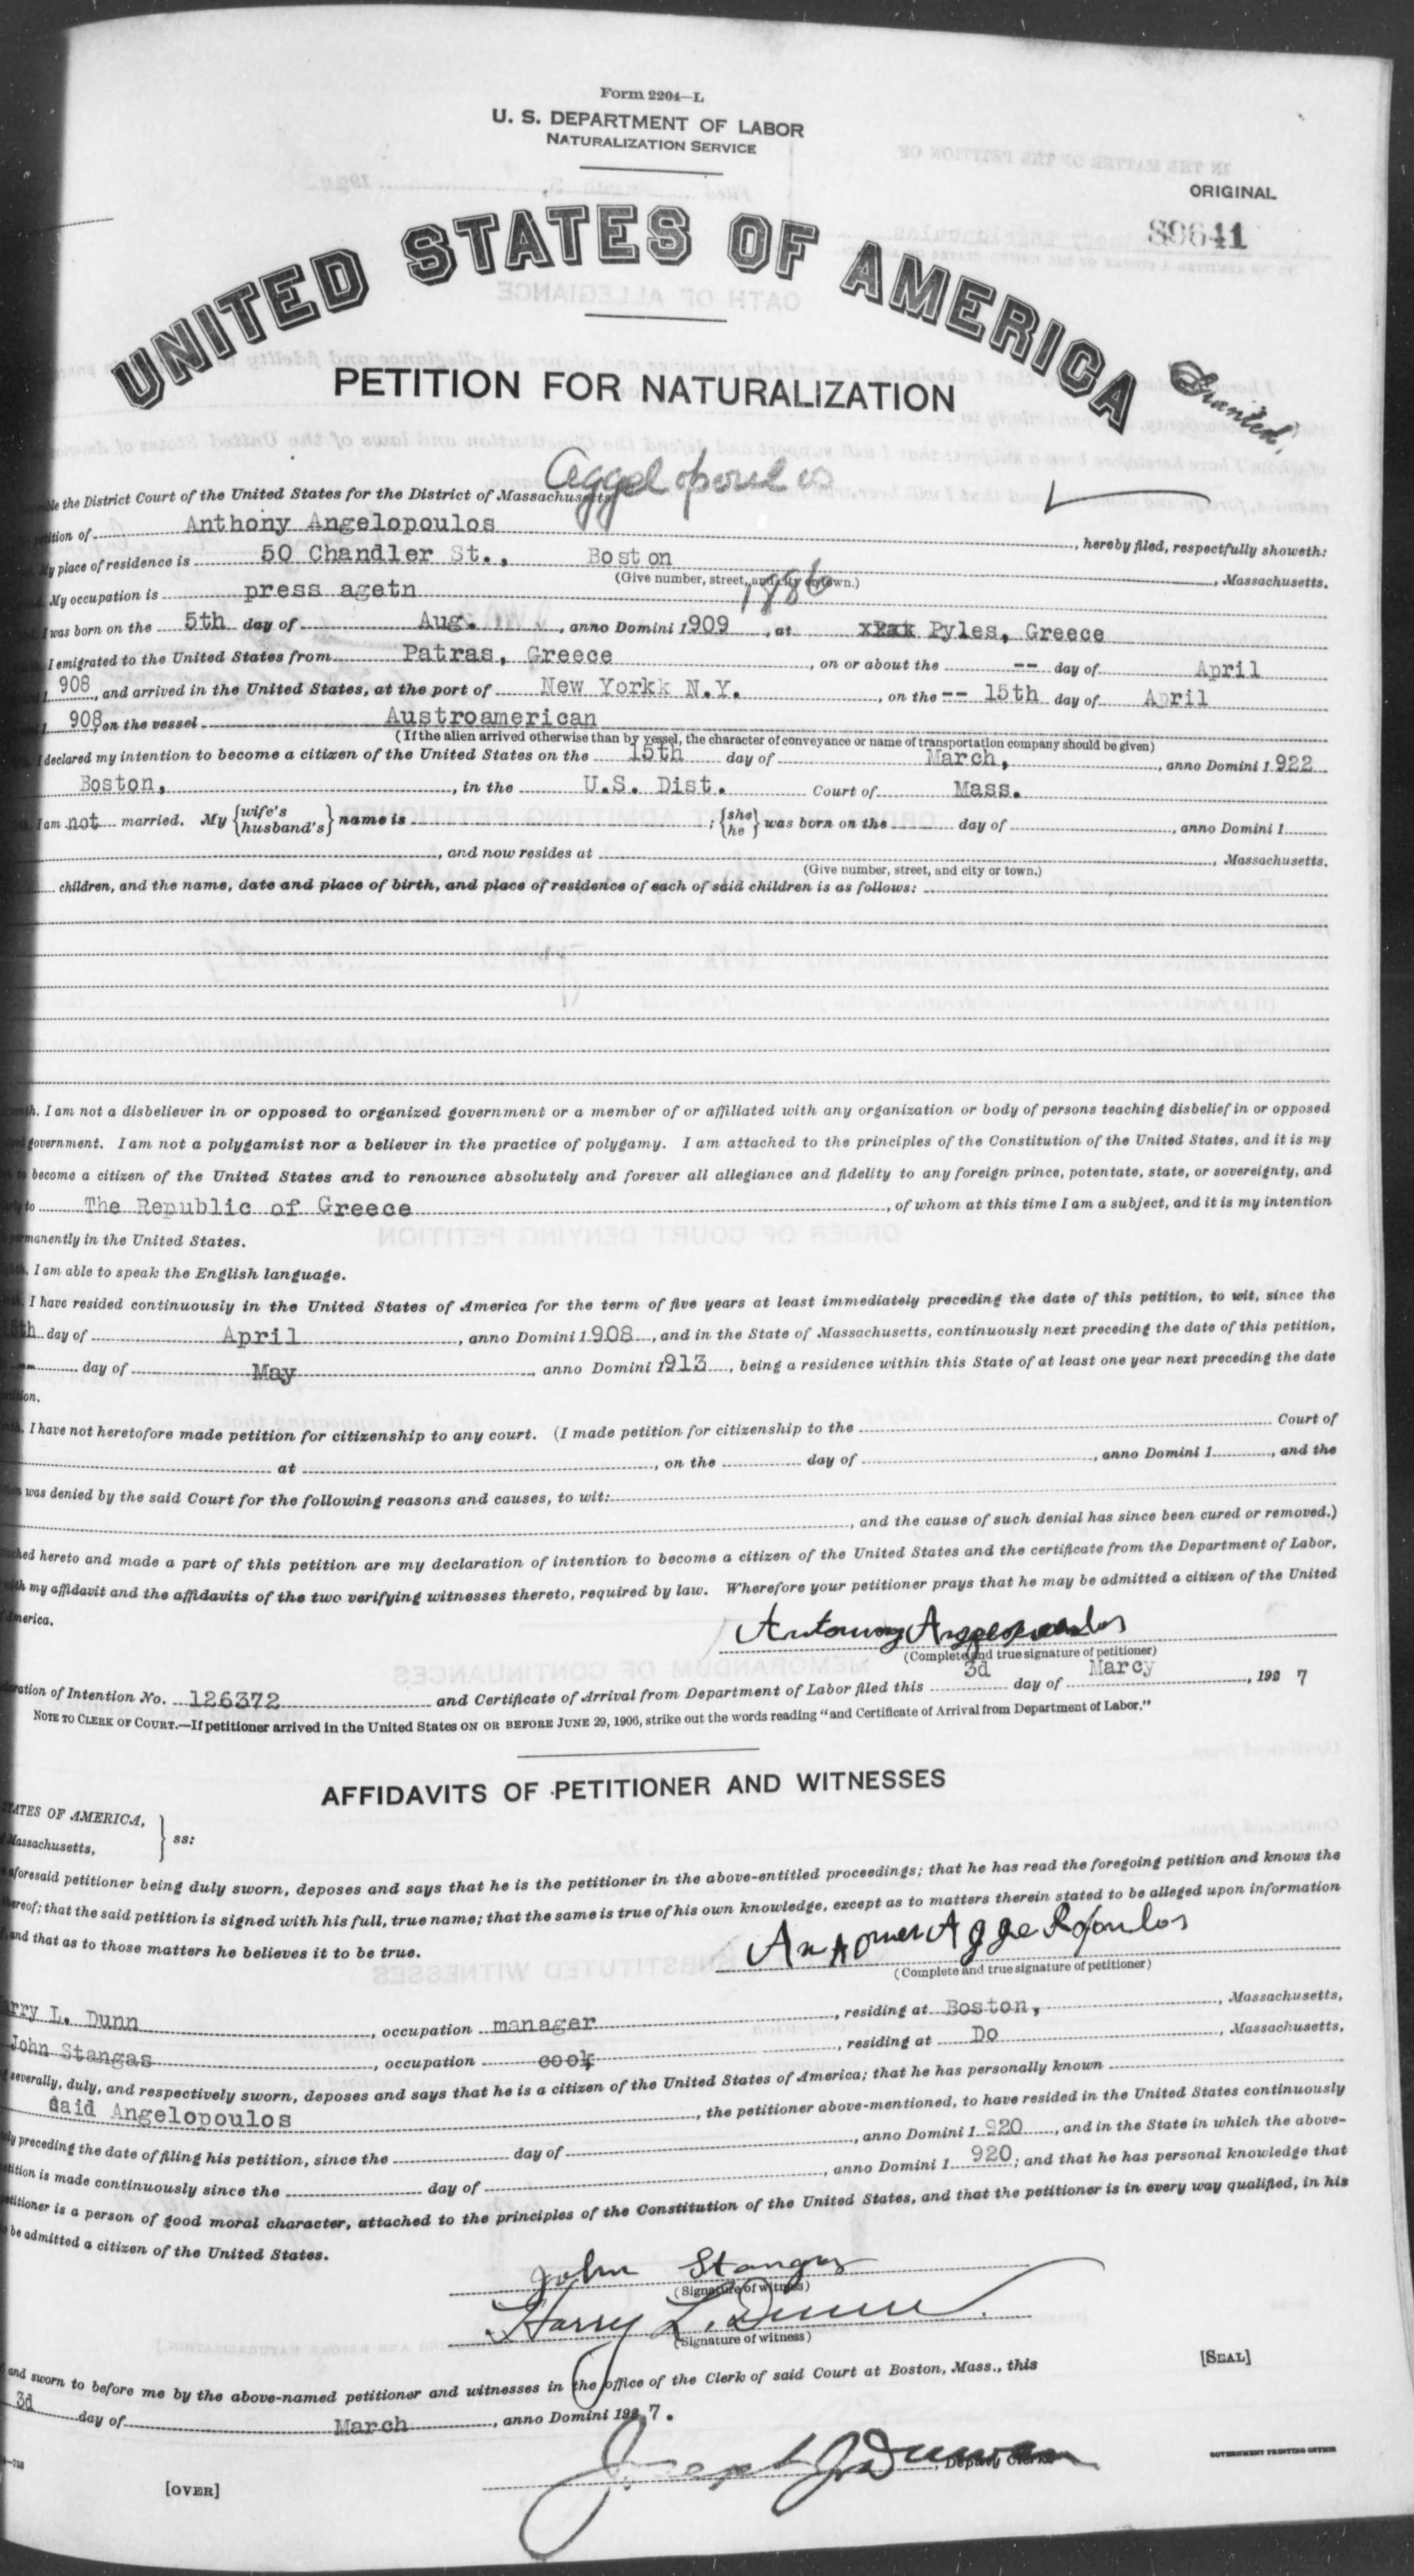 Petition for Naturalization of Anthony Angelopoulos